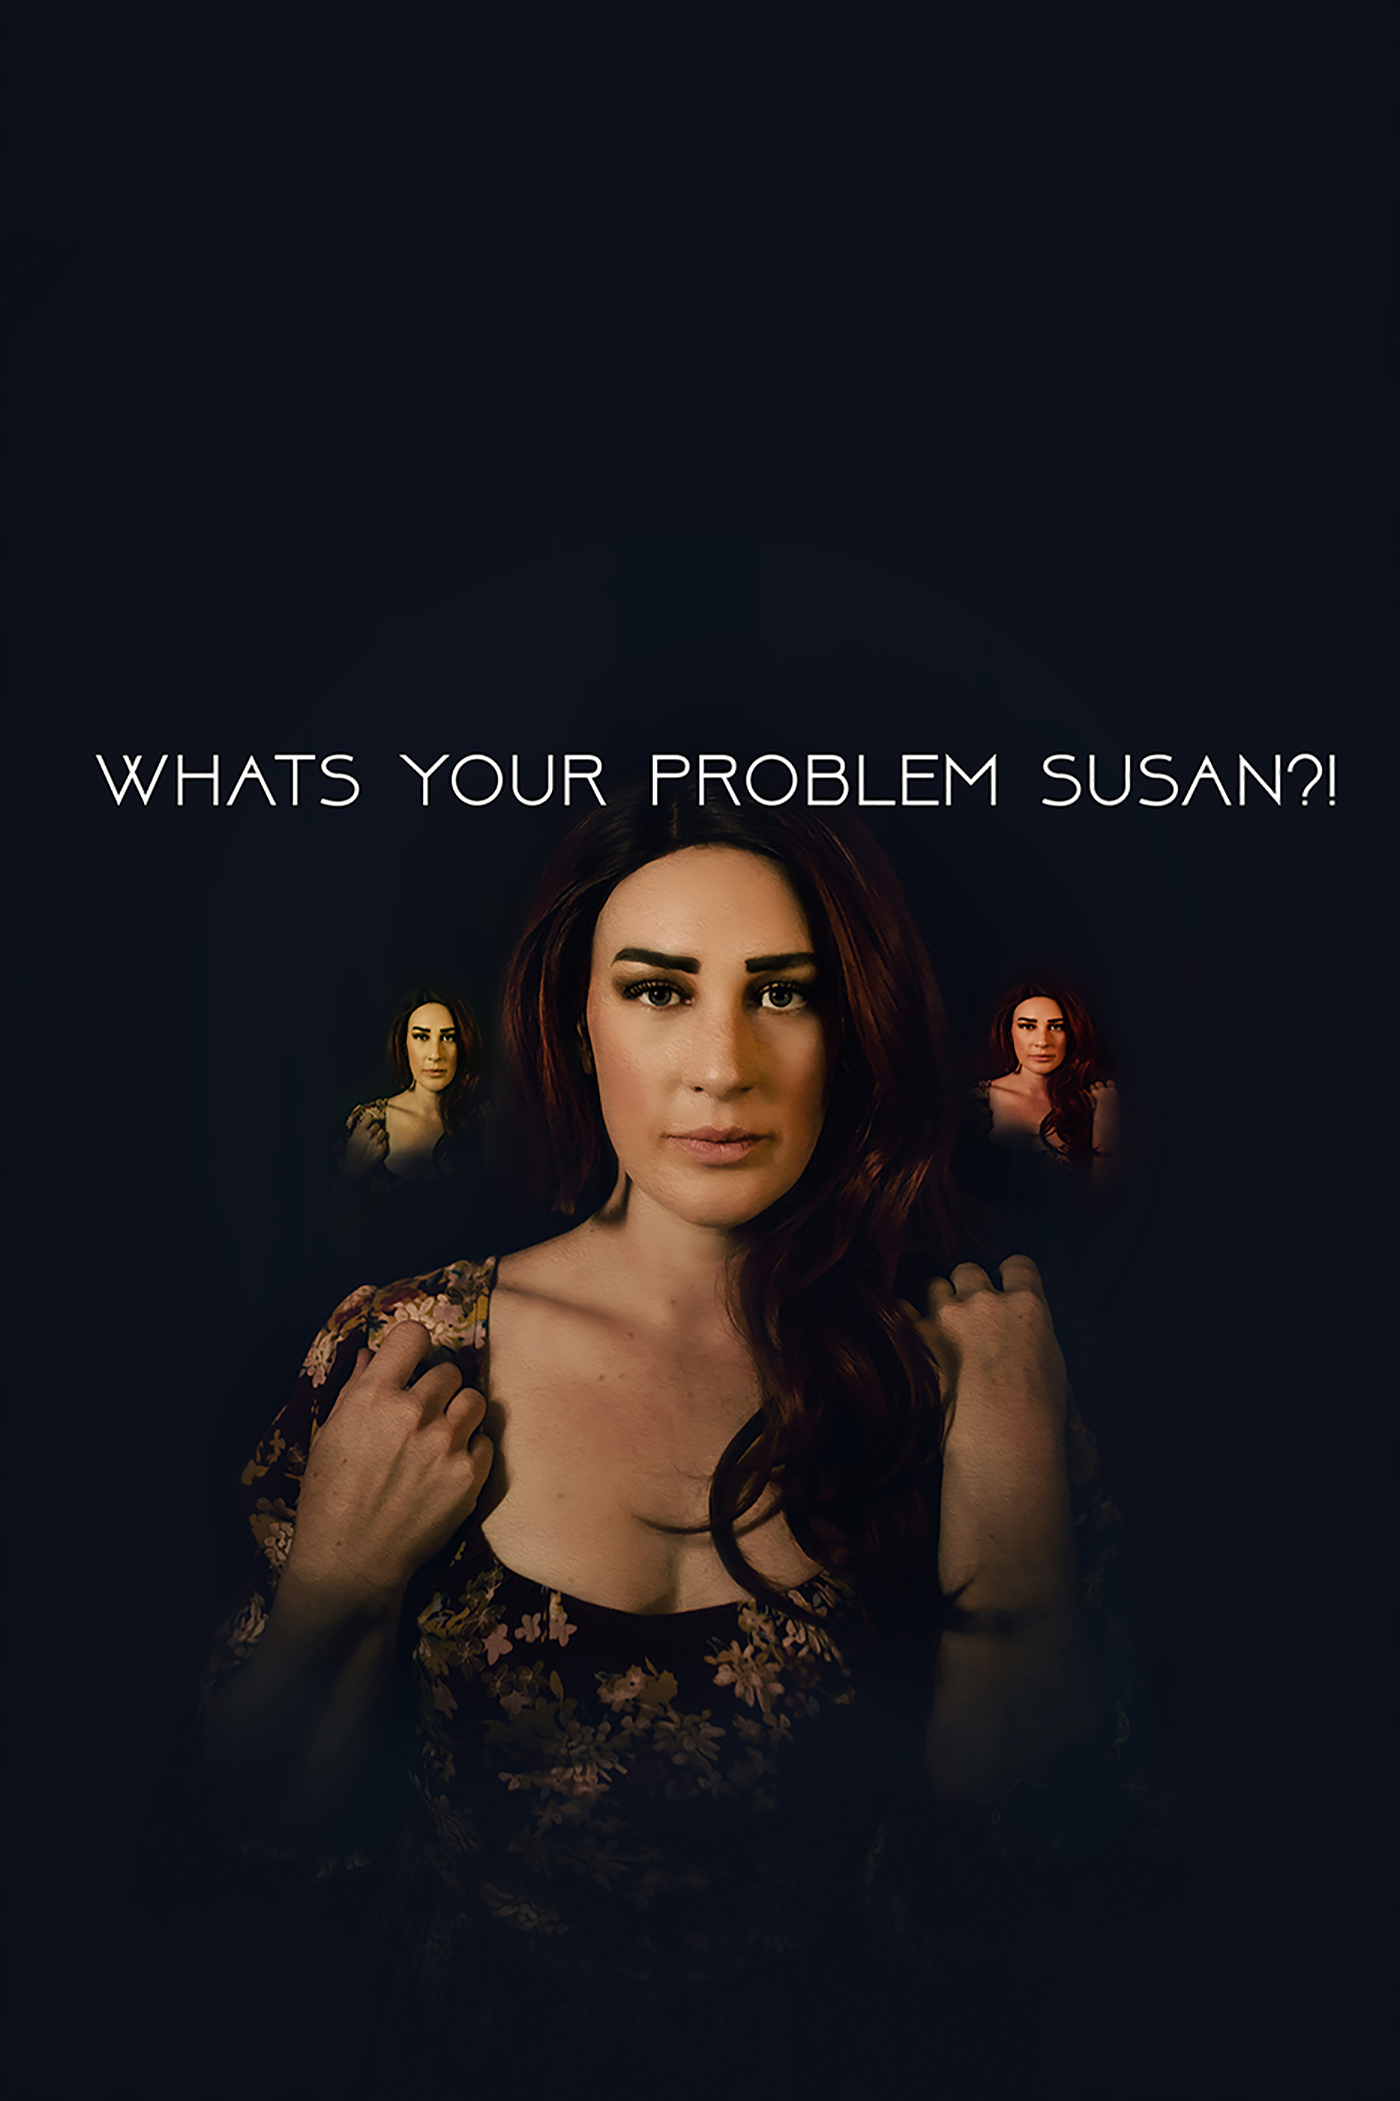 whatsyourproblemsusan's podcast